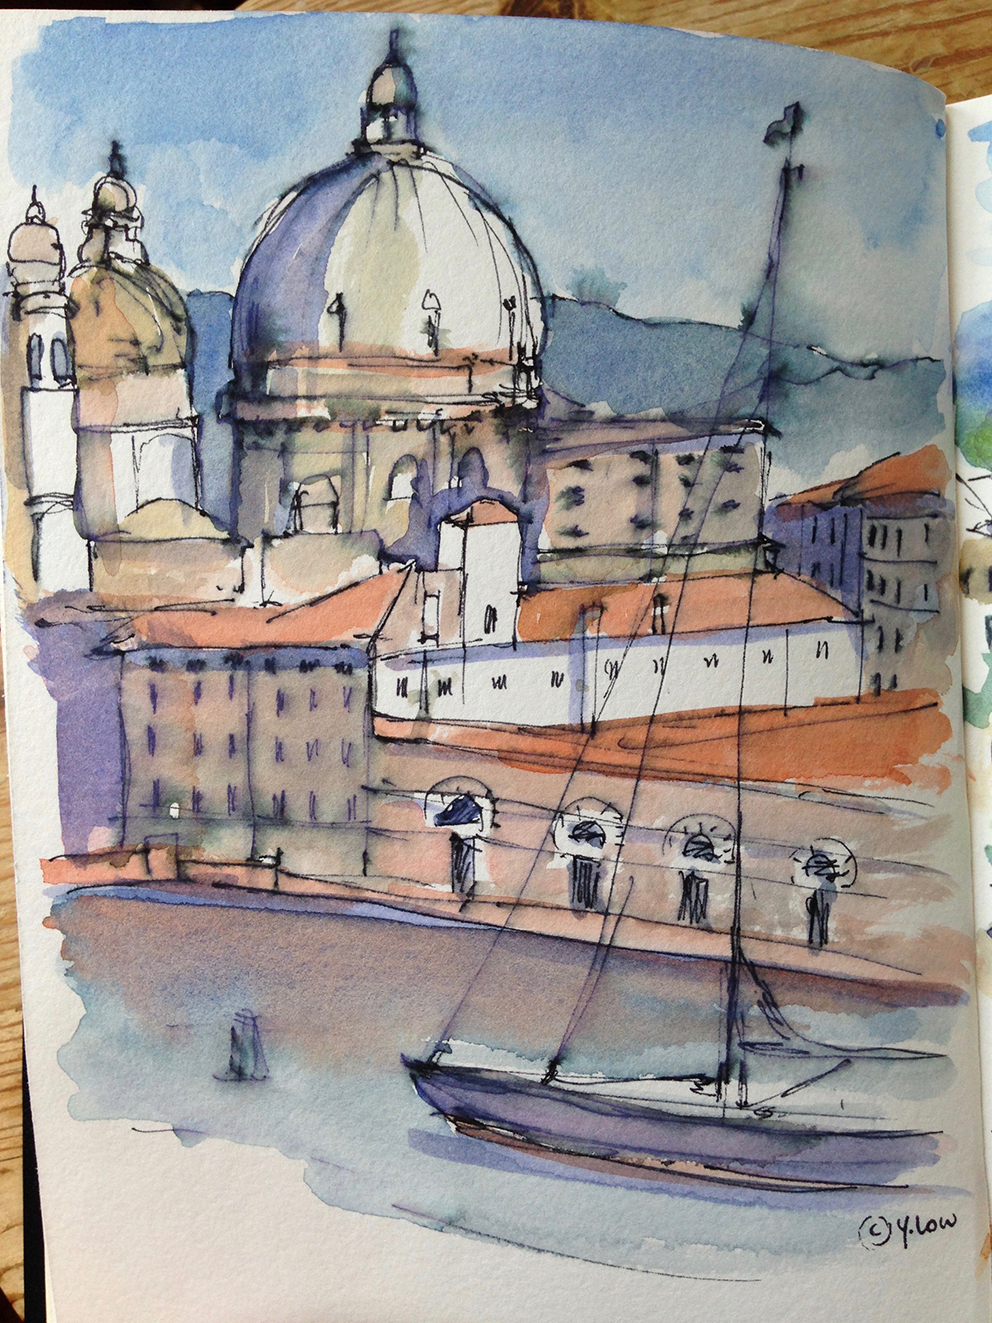 Here are some of my sketches today - this one's Venice.